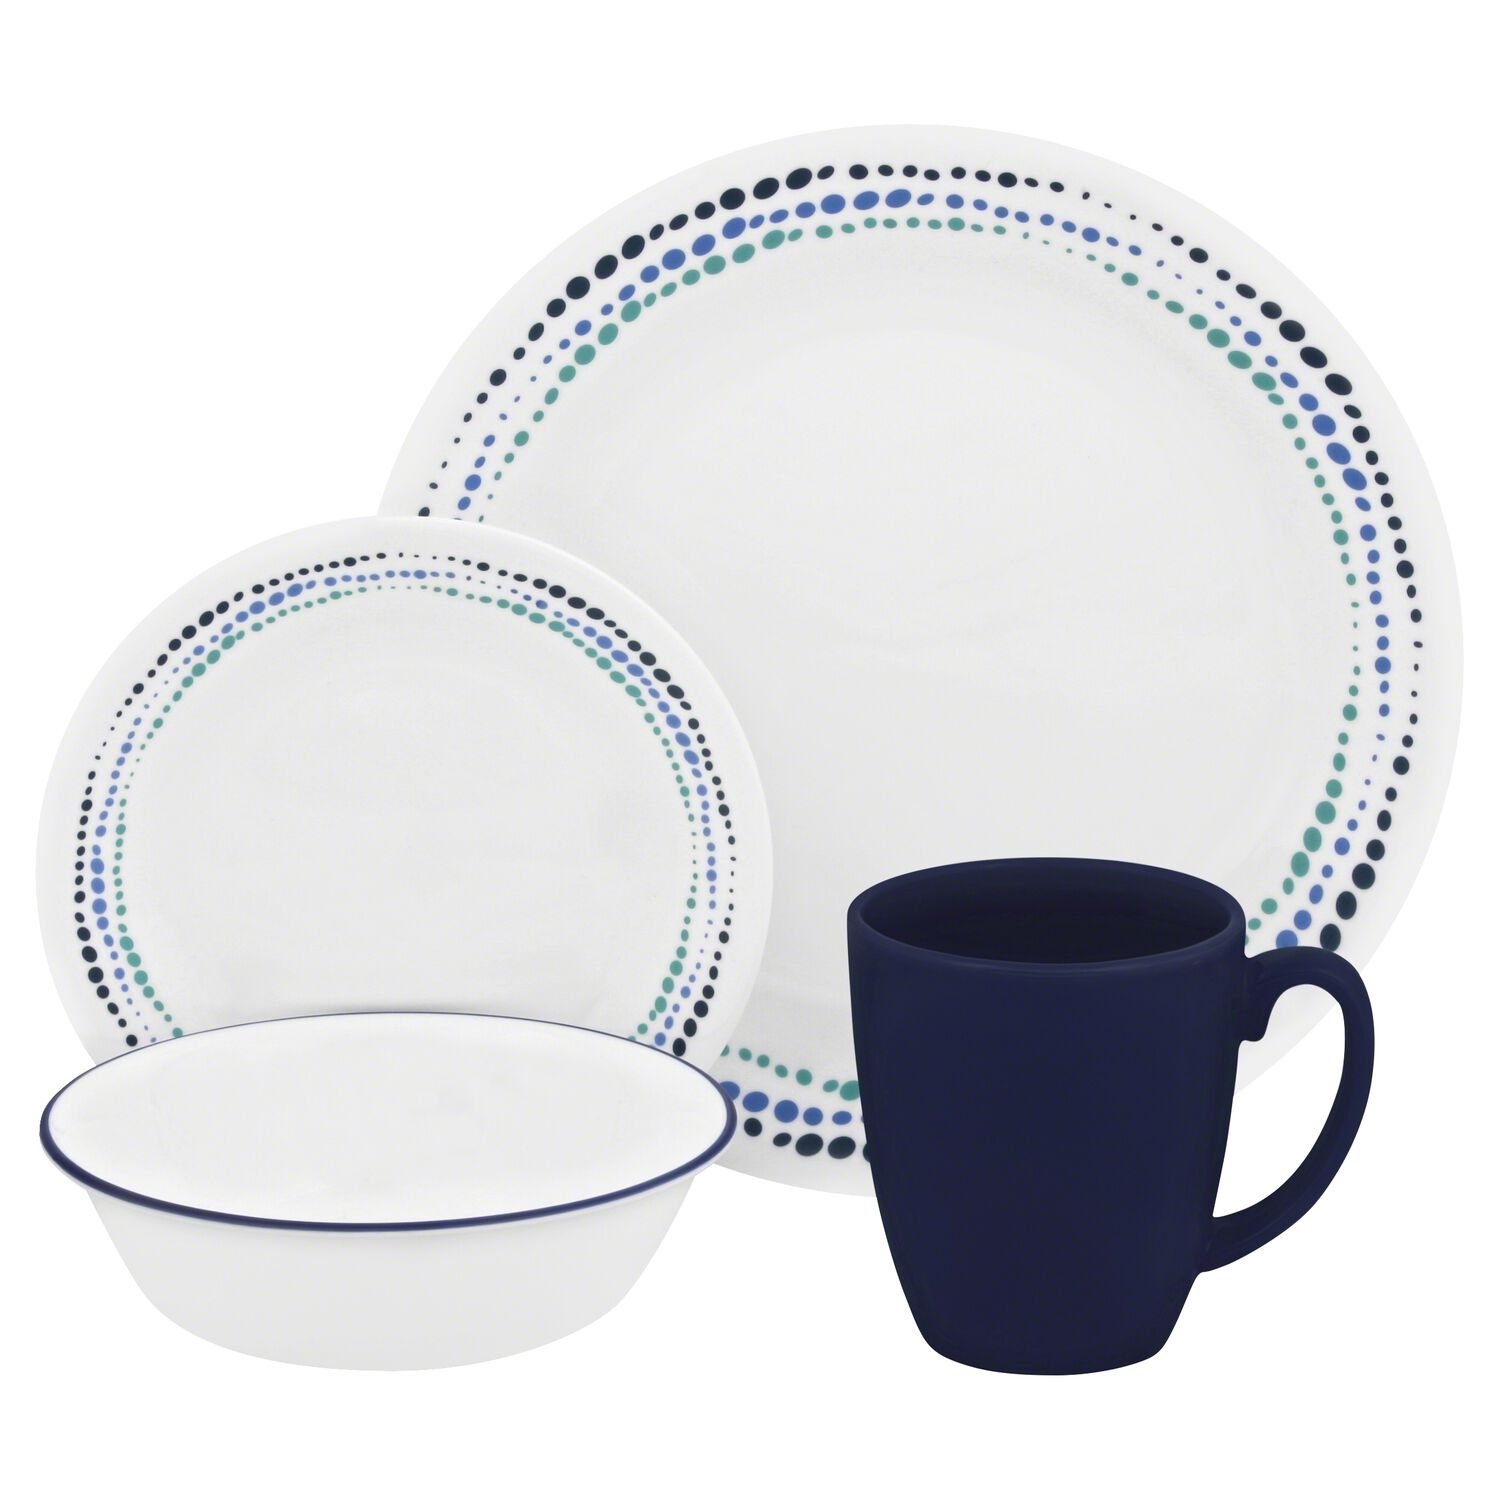 Livingware™ Ocean Blues 16-pc Dinnerware Set | Corelle®